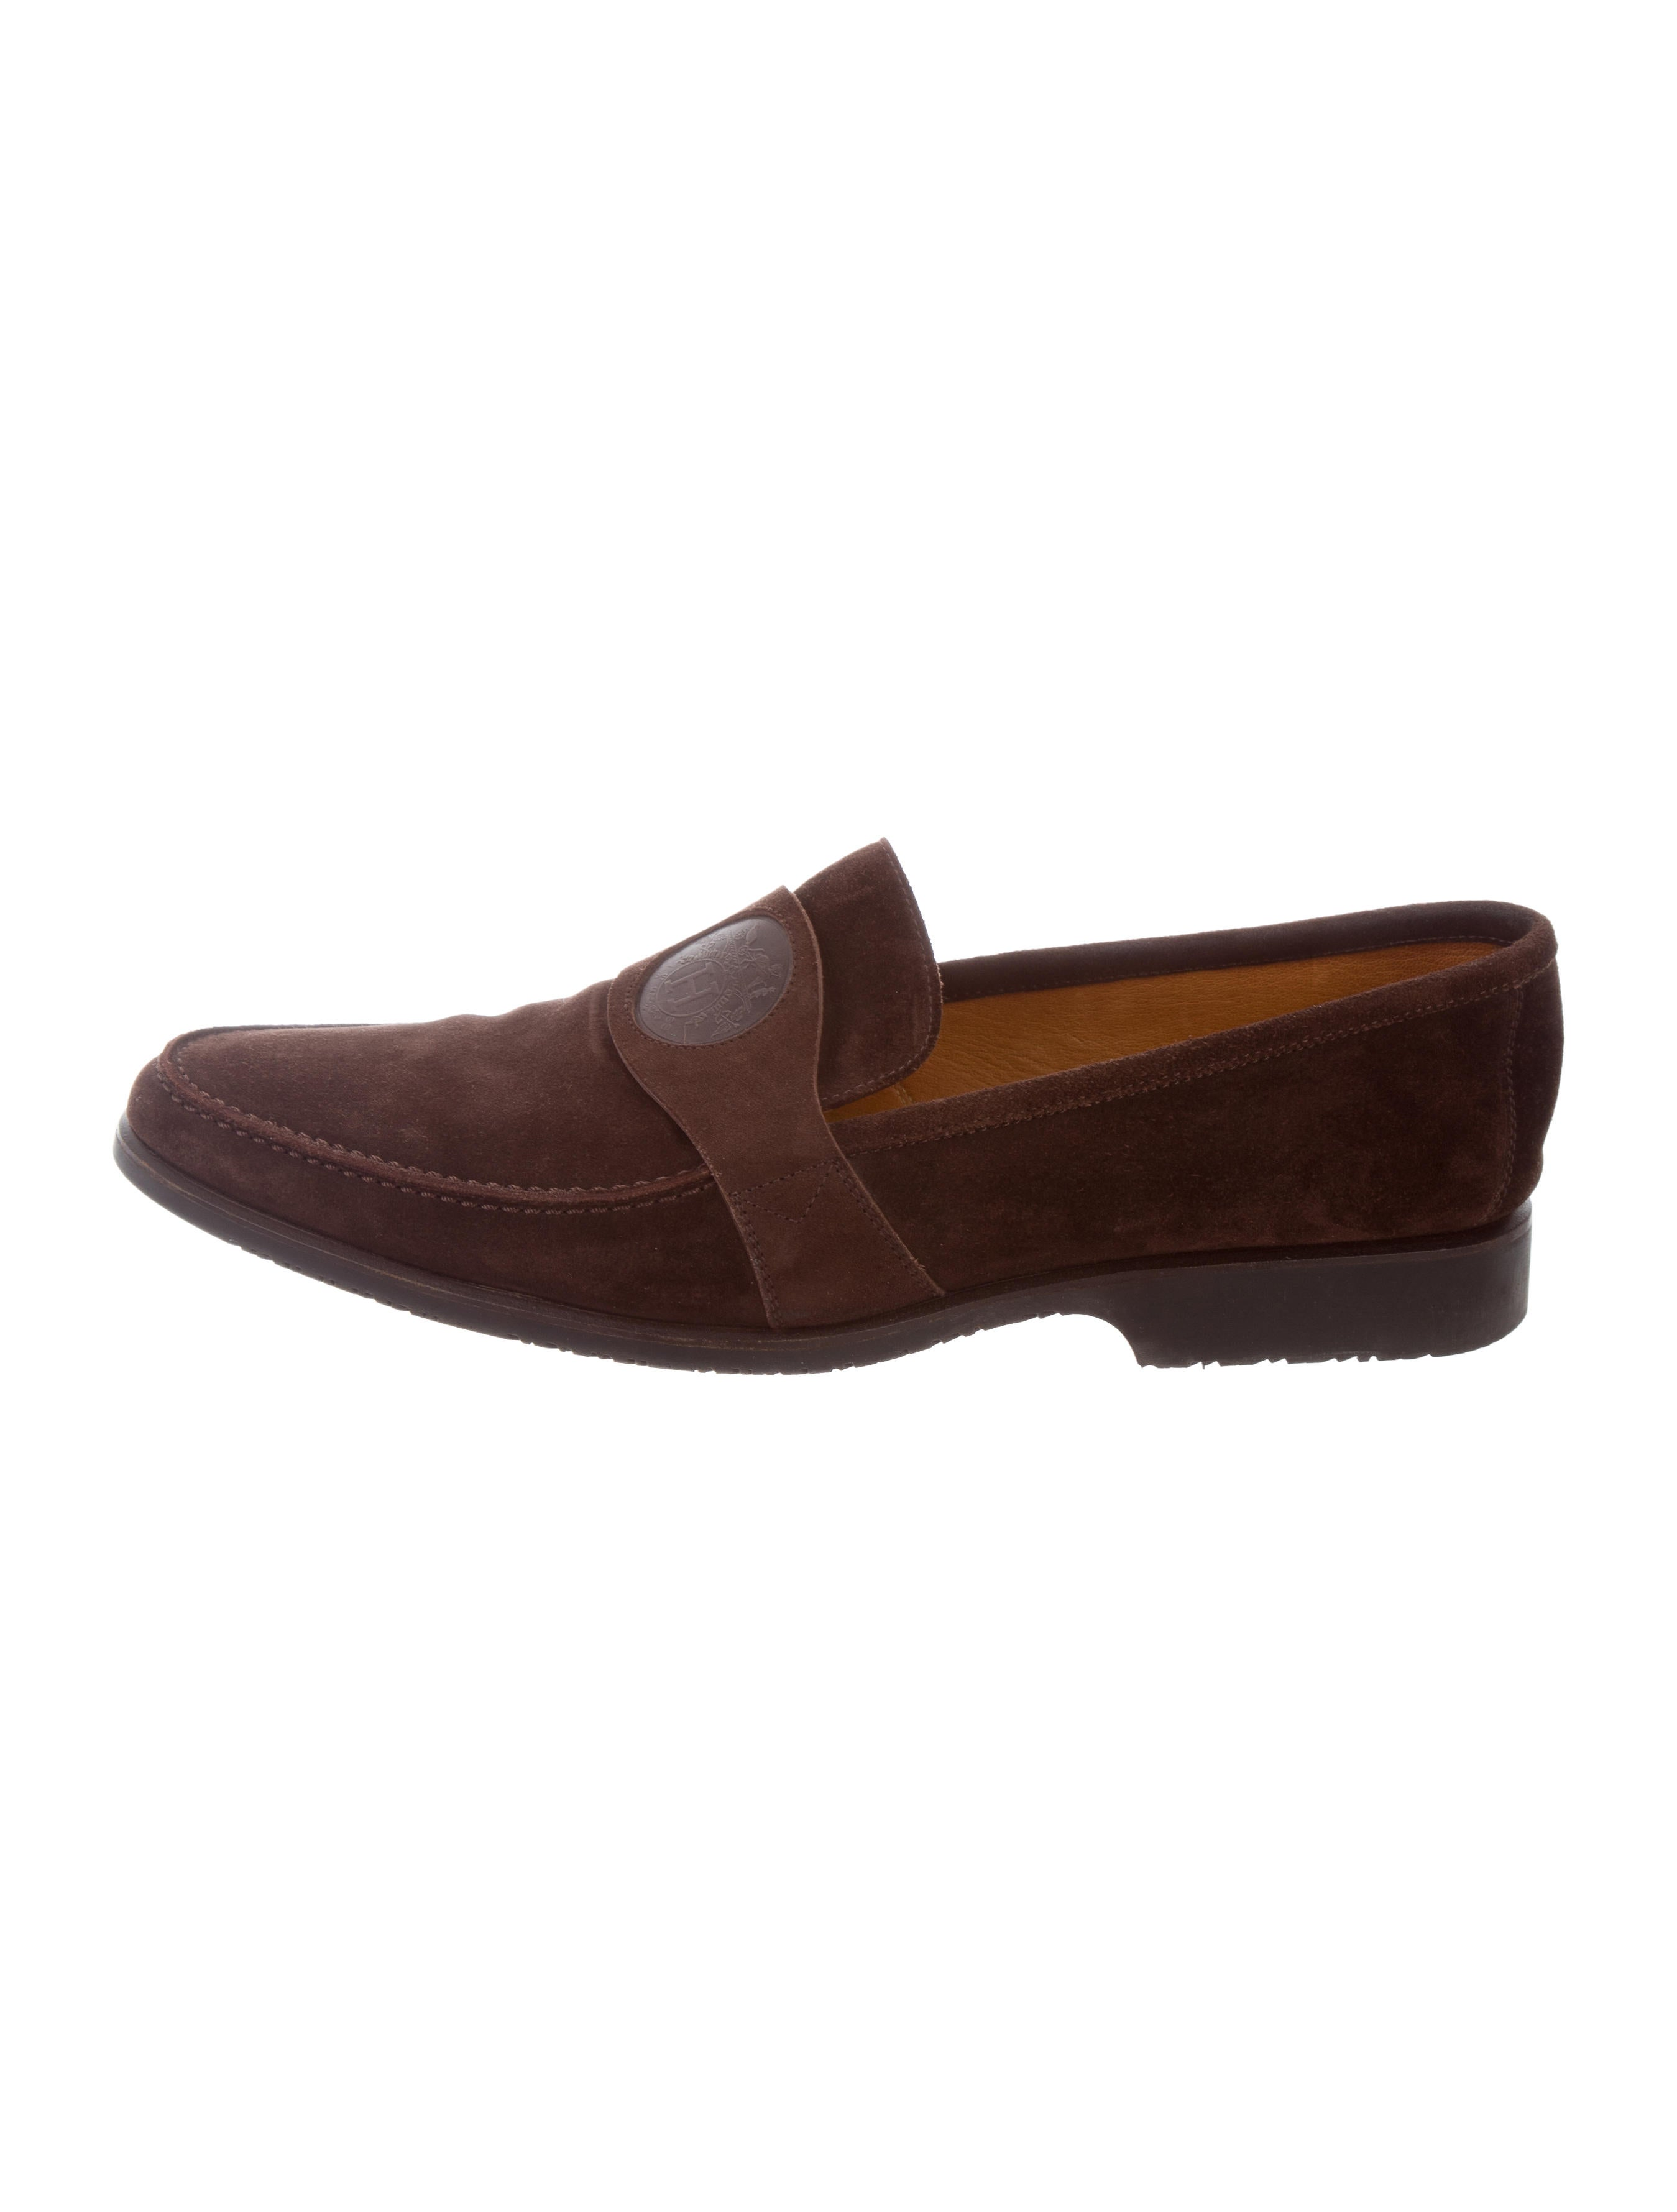 Hermu00e8s Logo Suede Loafers - Shoes - HER116233 | The RealReal